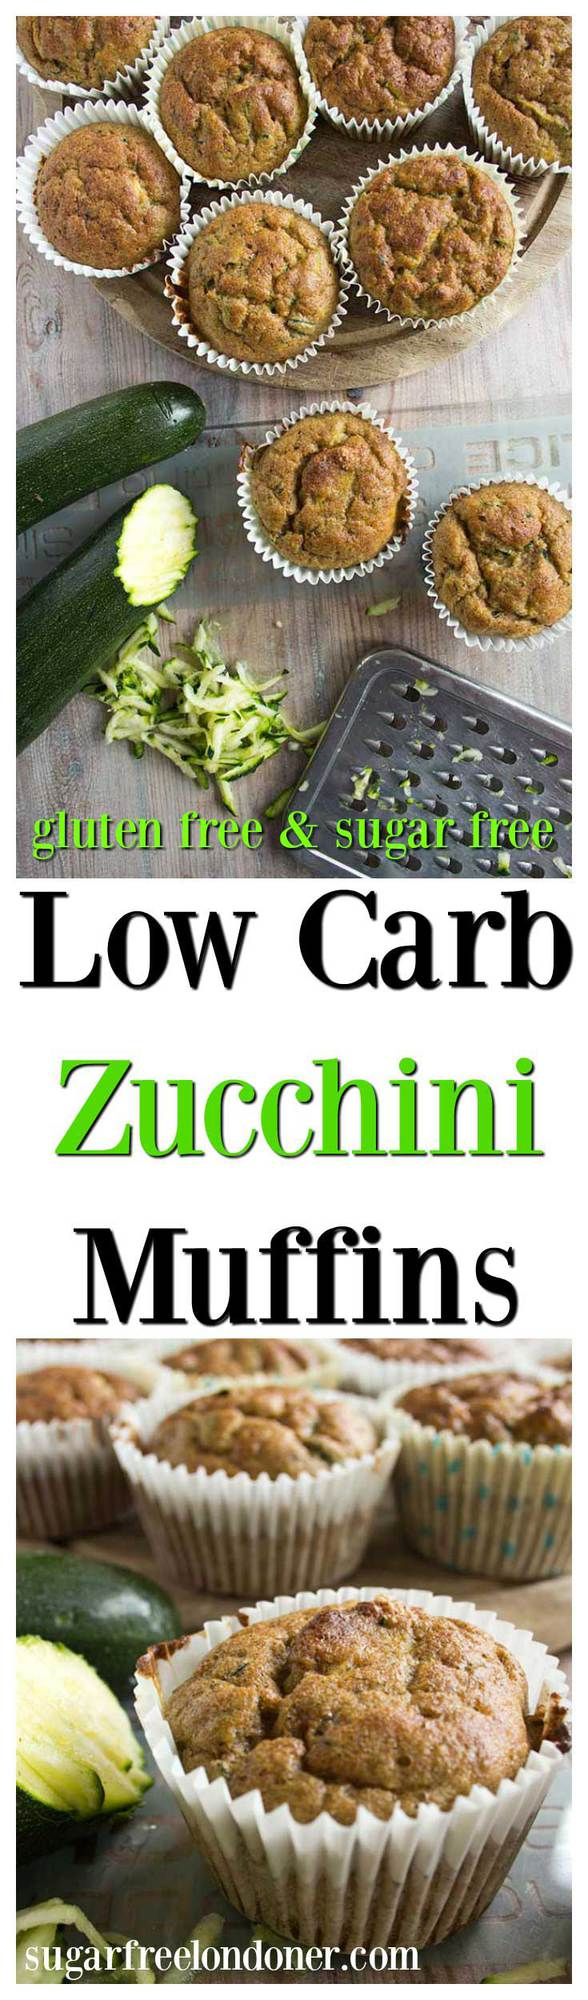 These super healthy low carb zucchini muffins are a tasty snack or grab and go breakfast. Grain free and sugar free! #zucchinimuffins #muffins